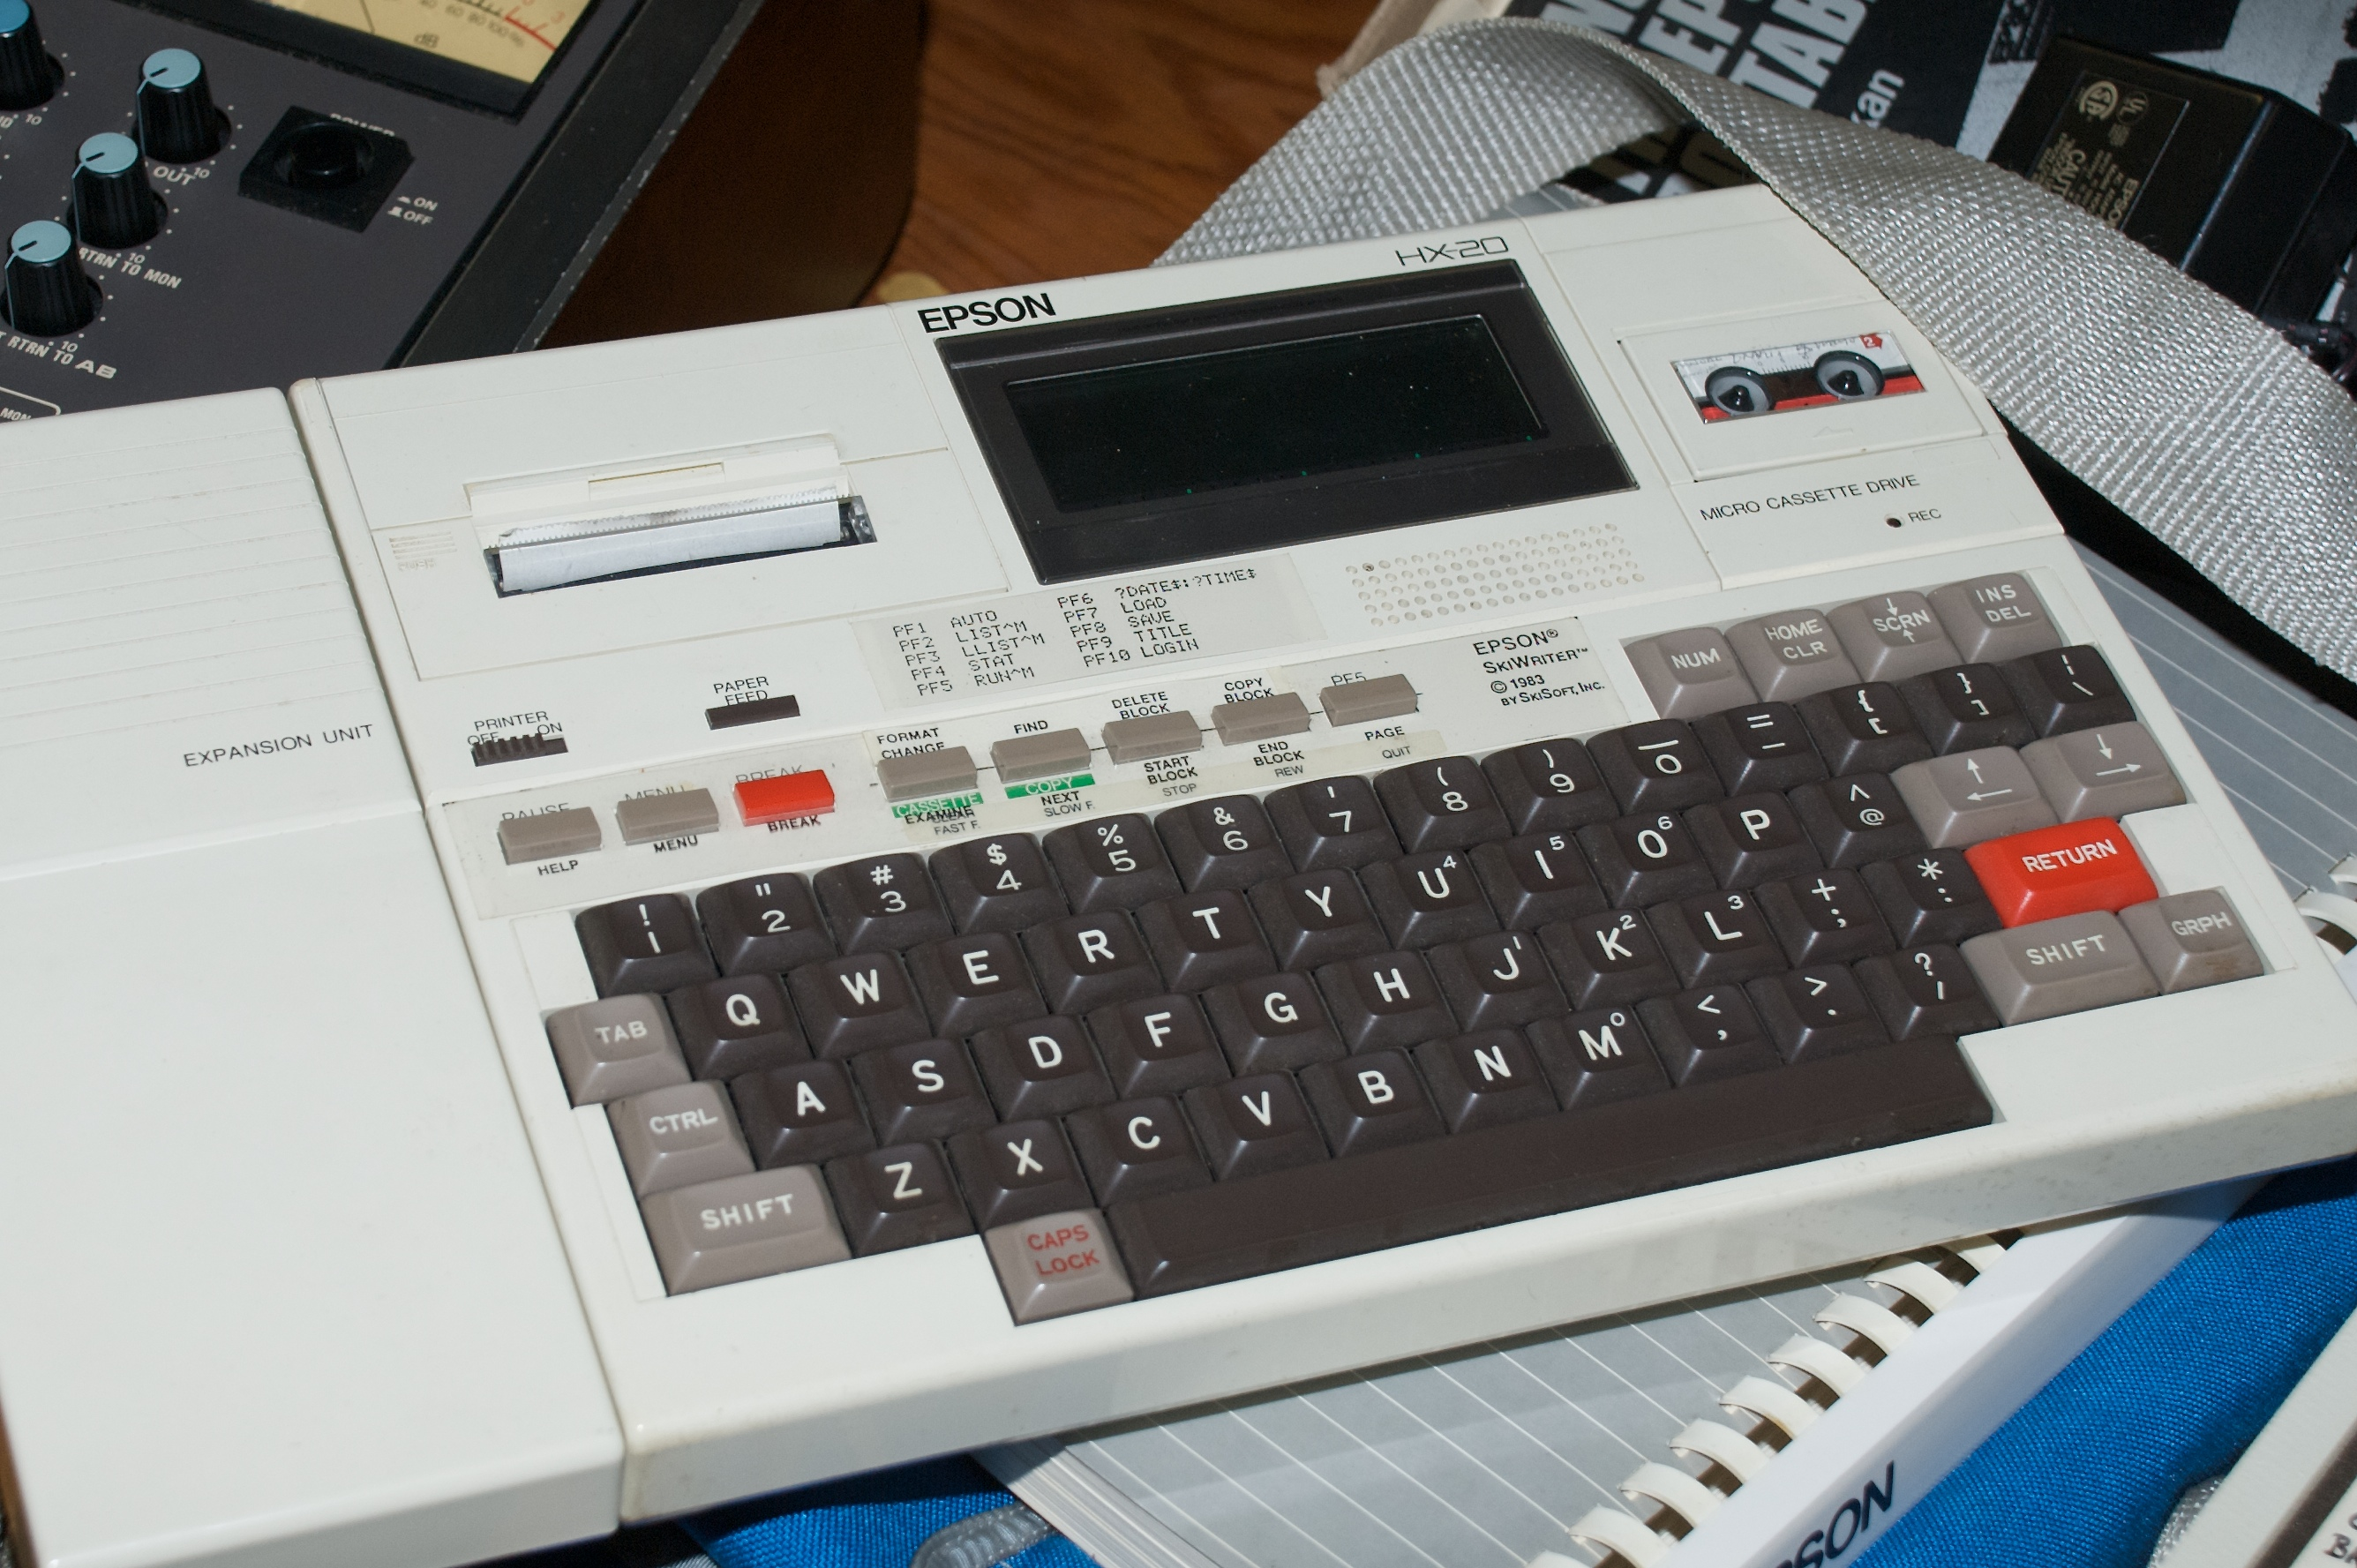 The Epson HX-20. A classic example of early notebooks...the